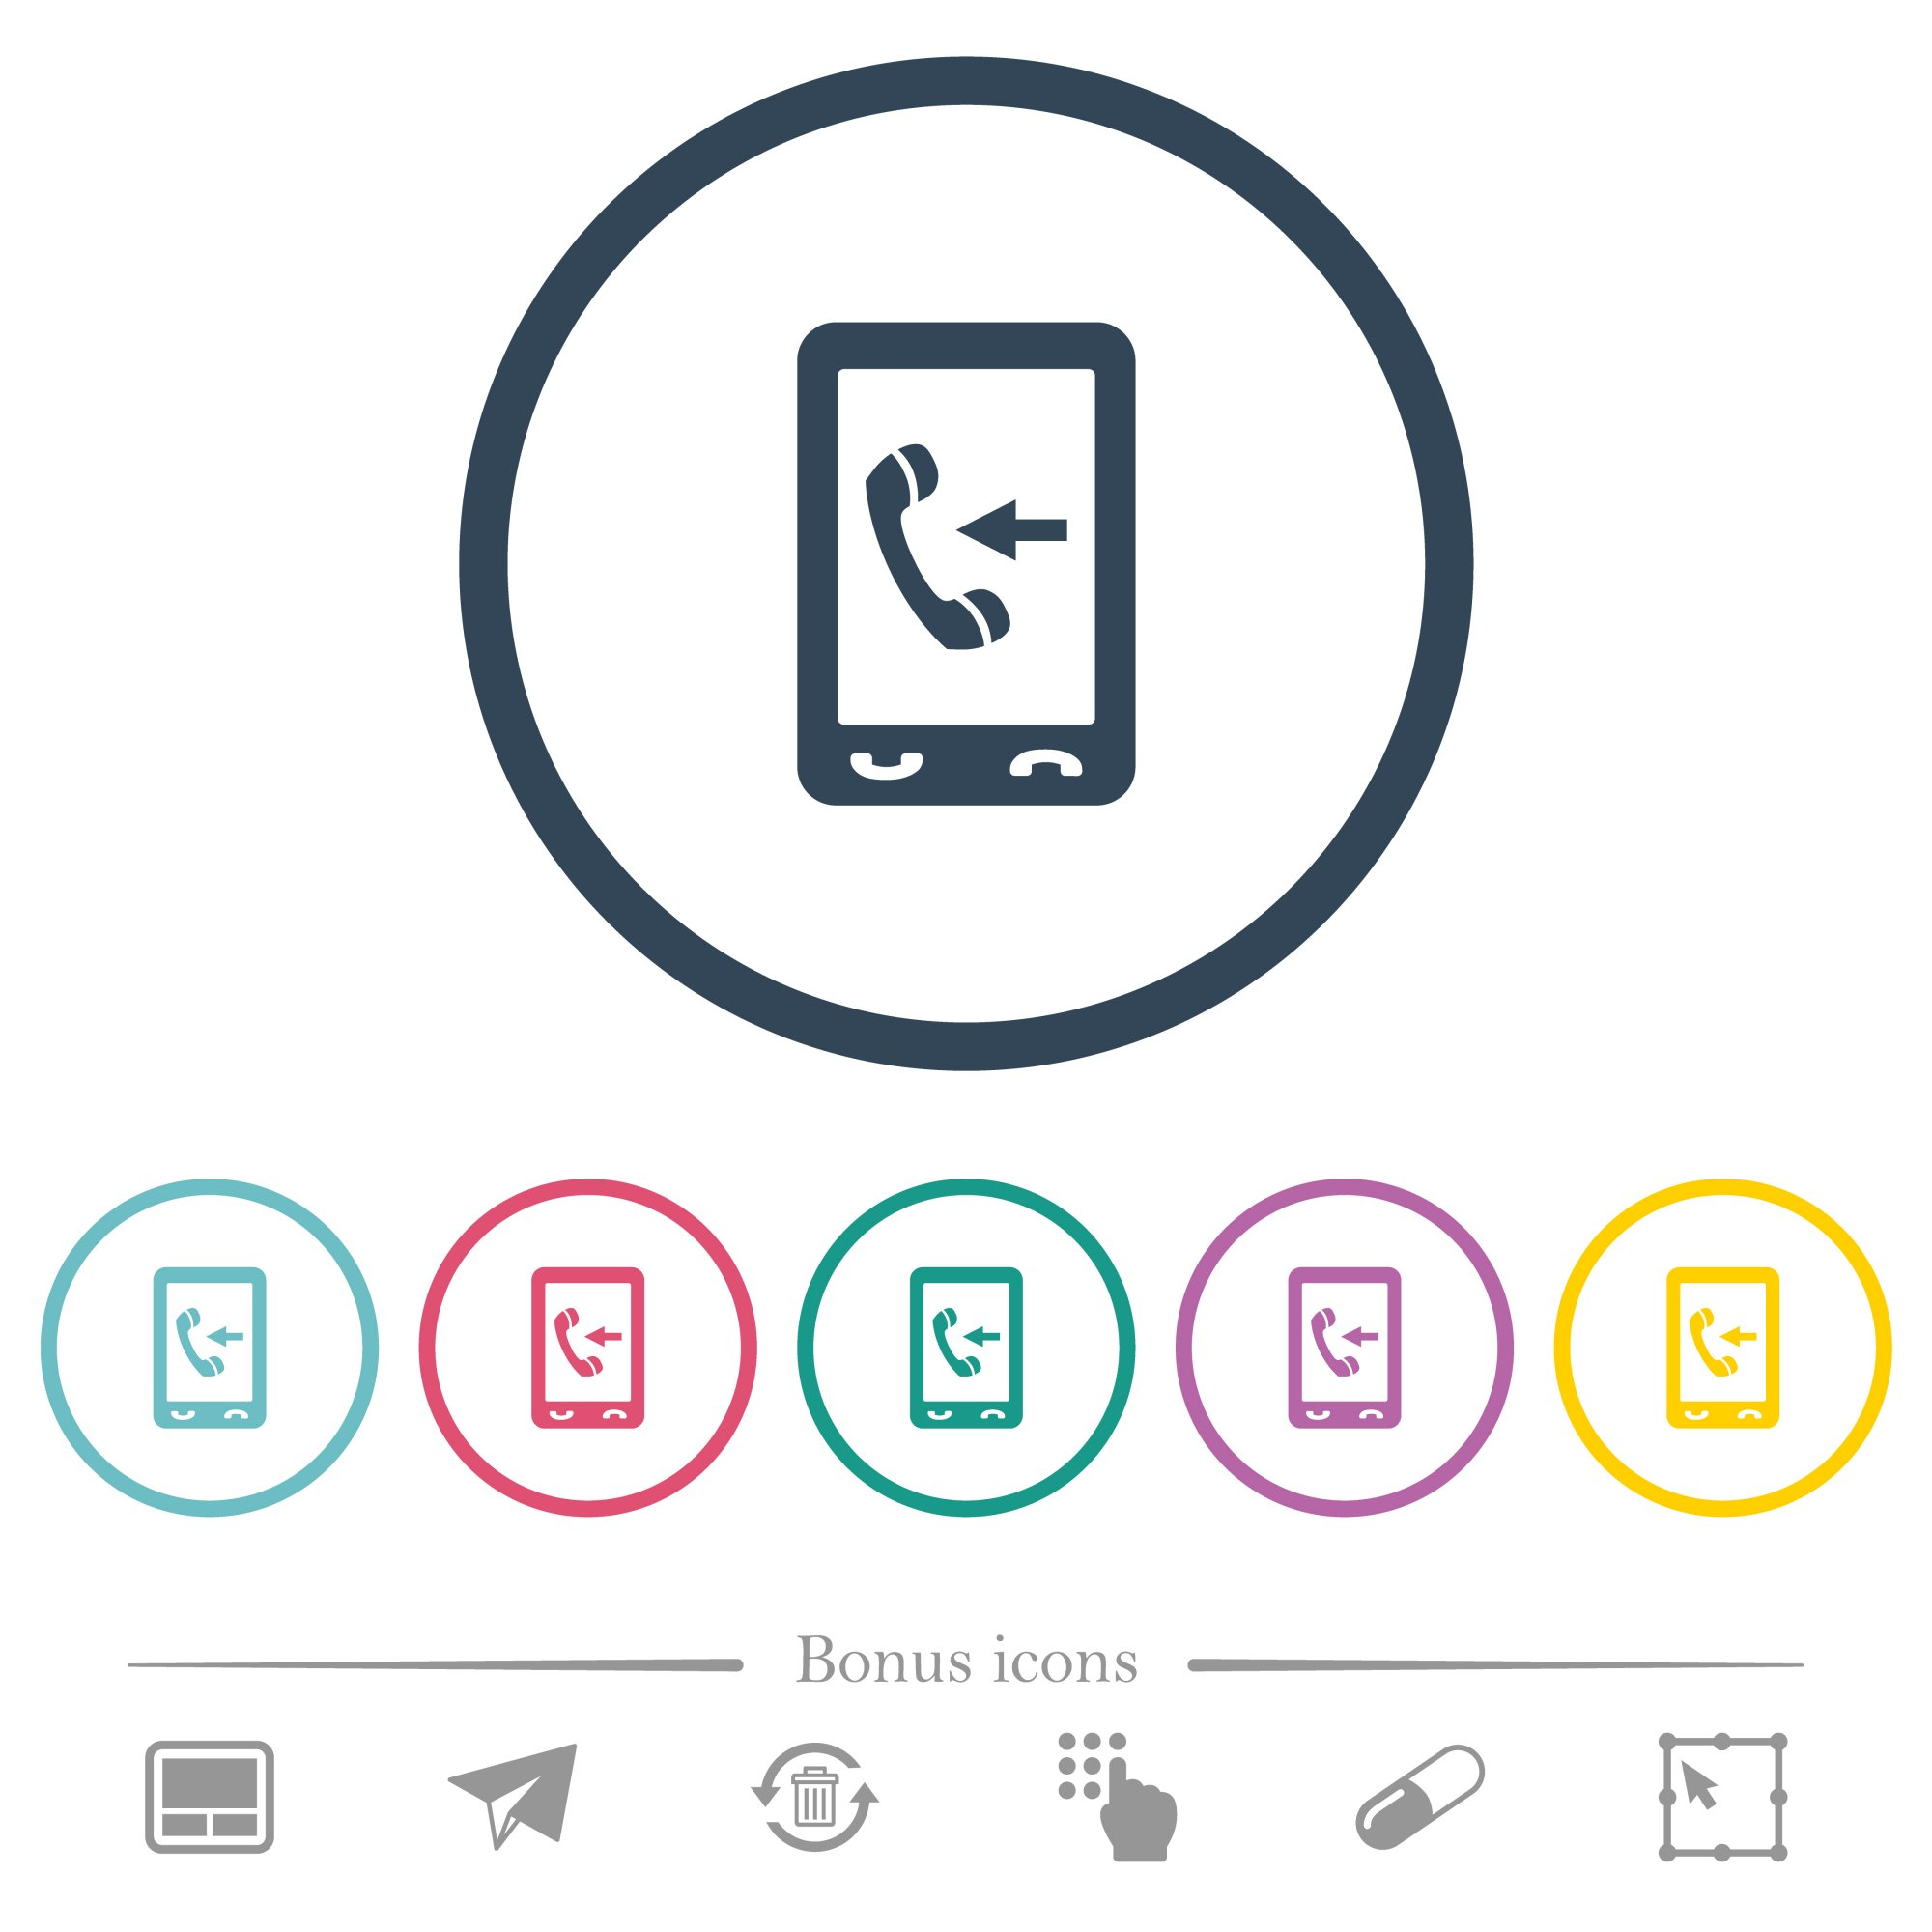 Mobile incoming call flat color icons in round outlines. 6 bonus icons included. - Free image